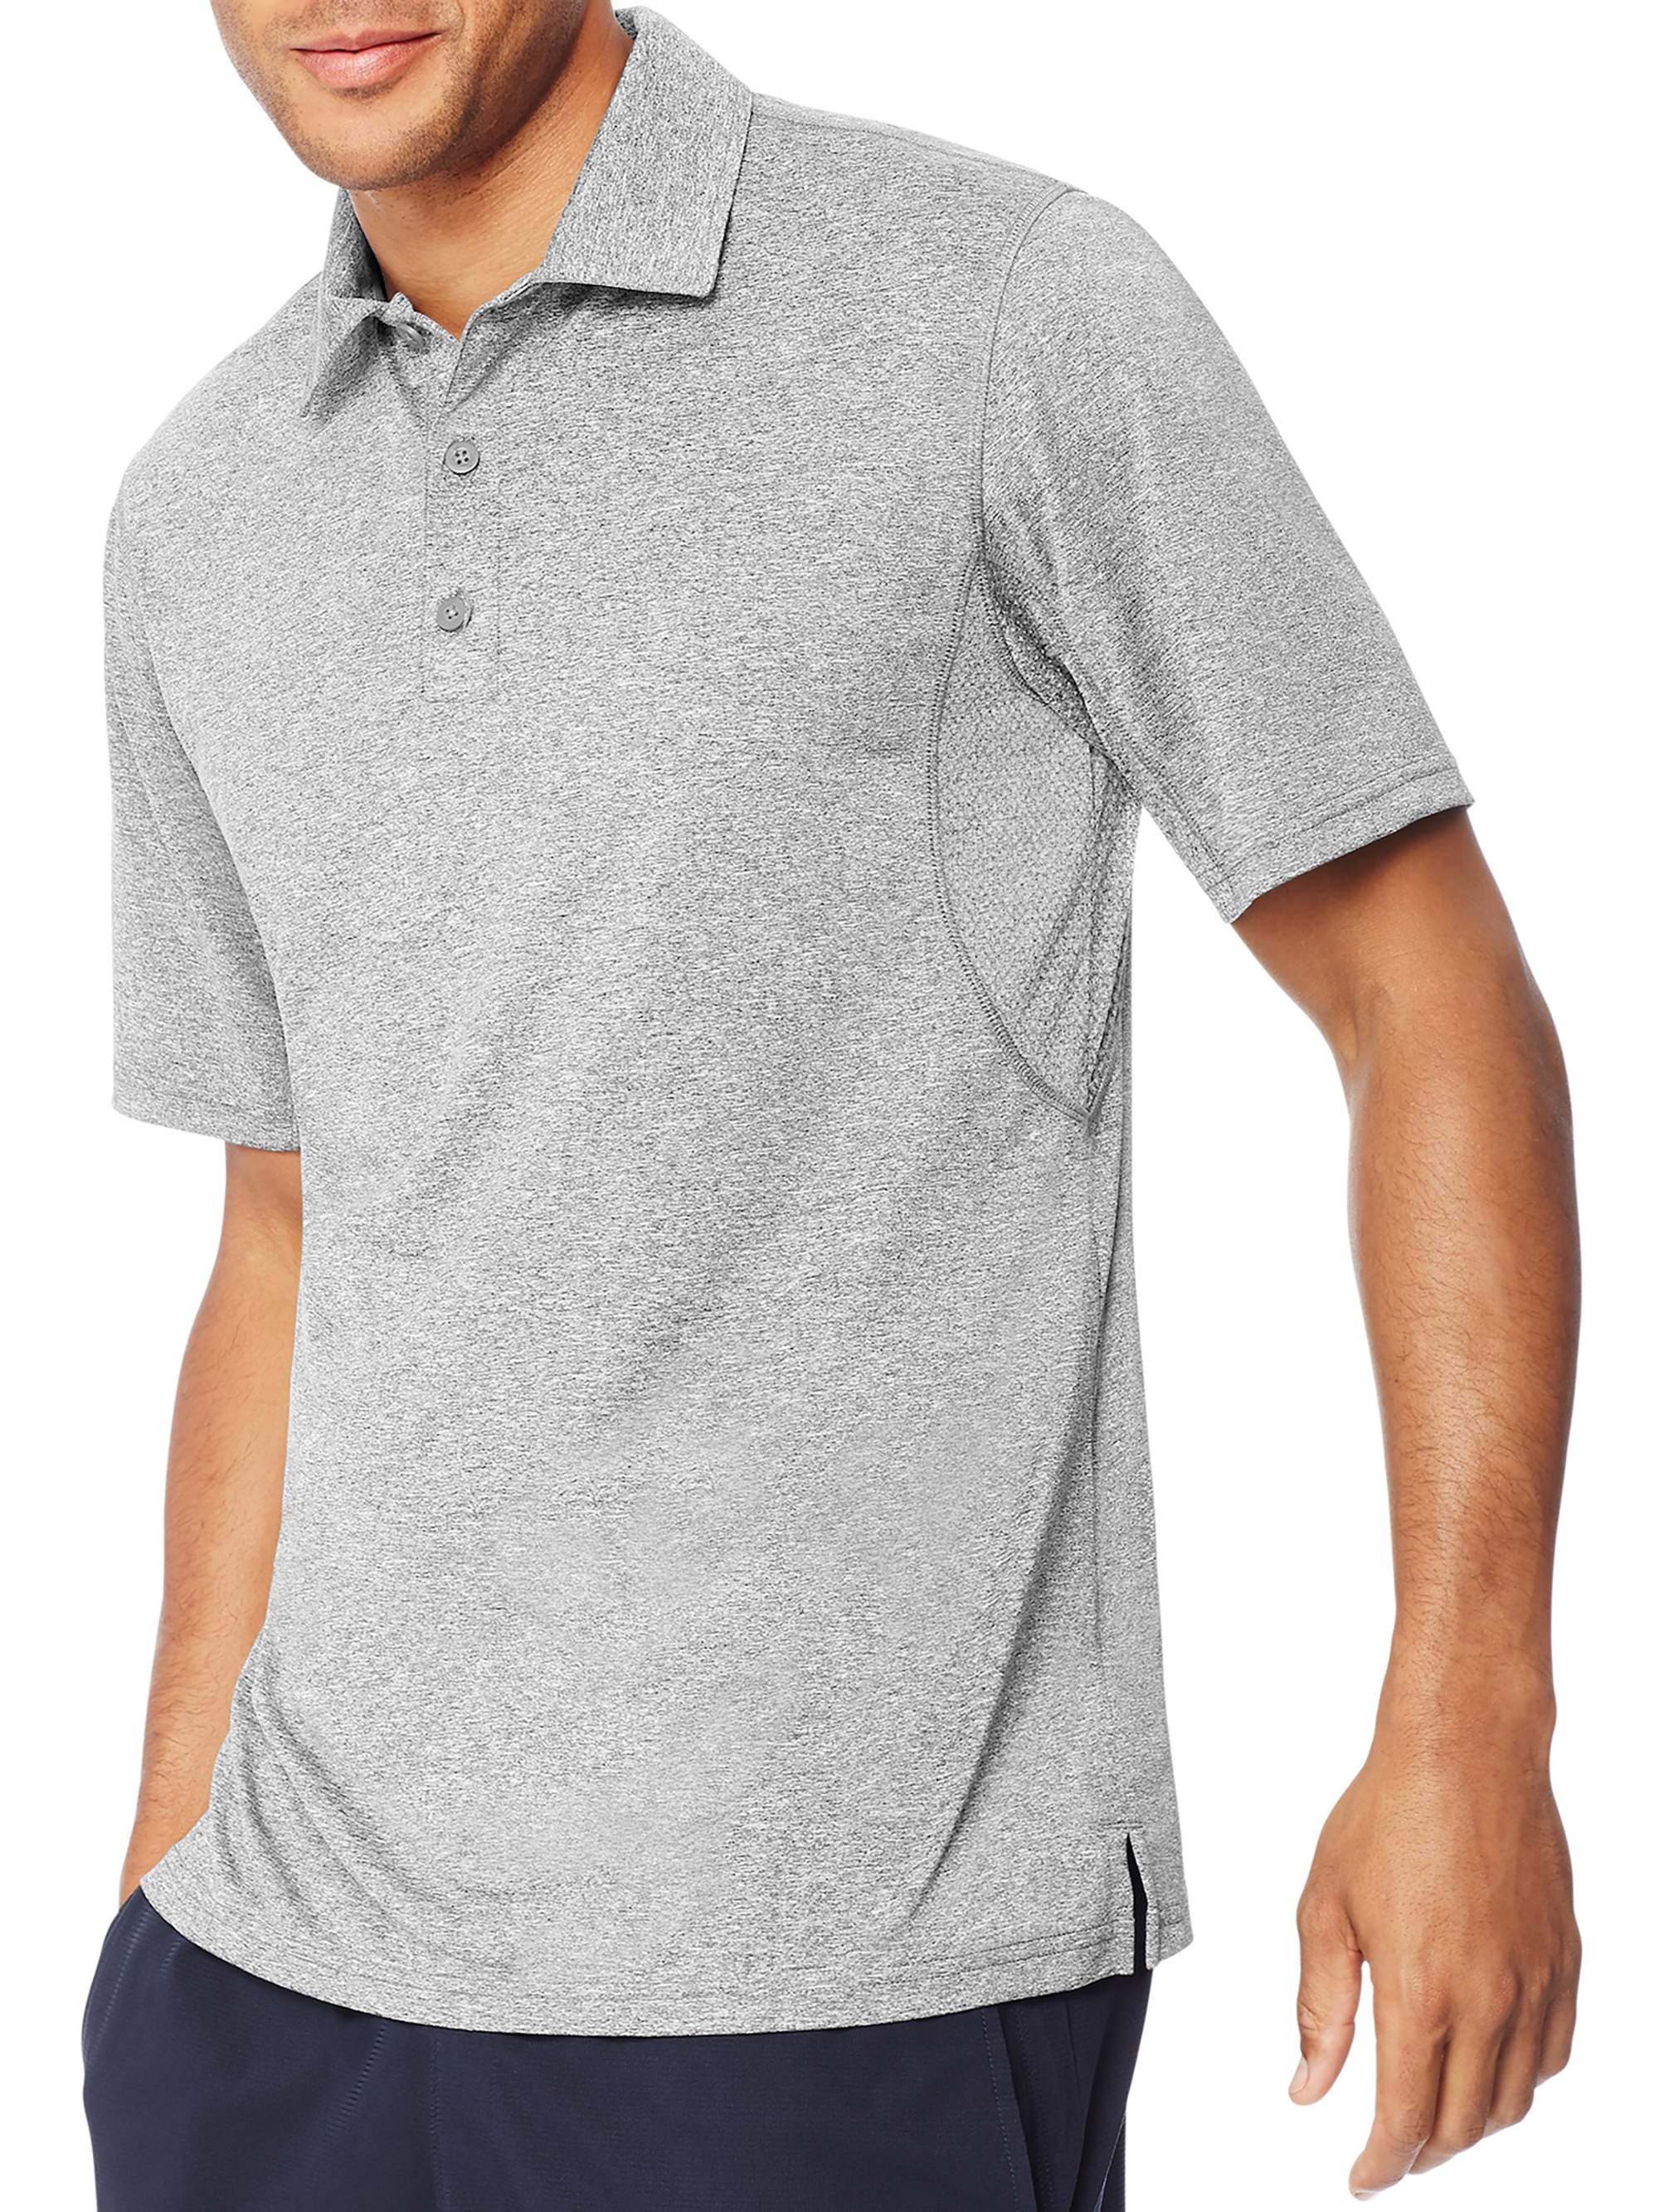 Hanes Mens Short Sleeve Polo Shirt